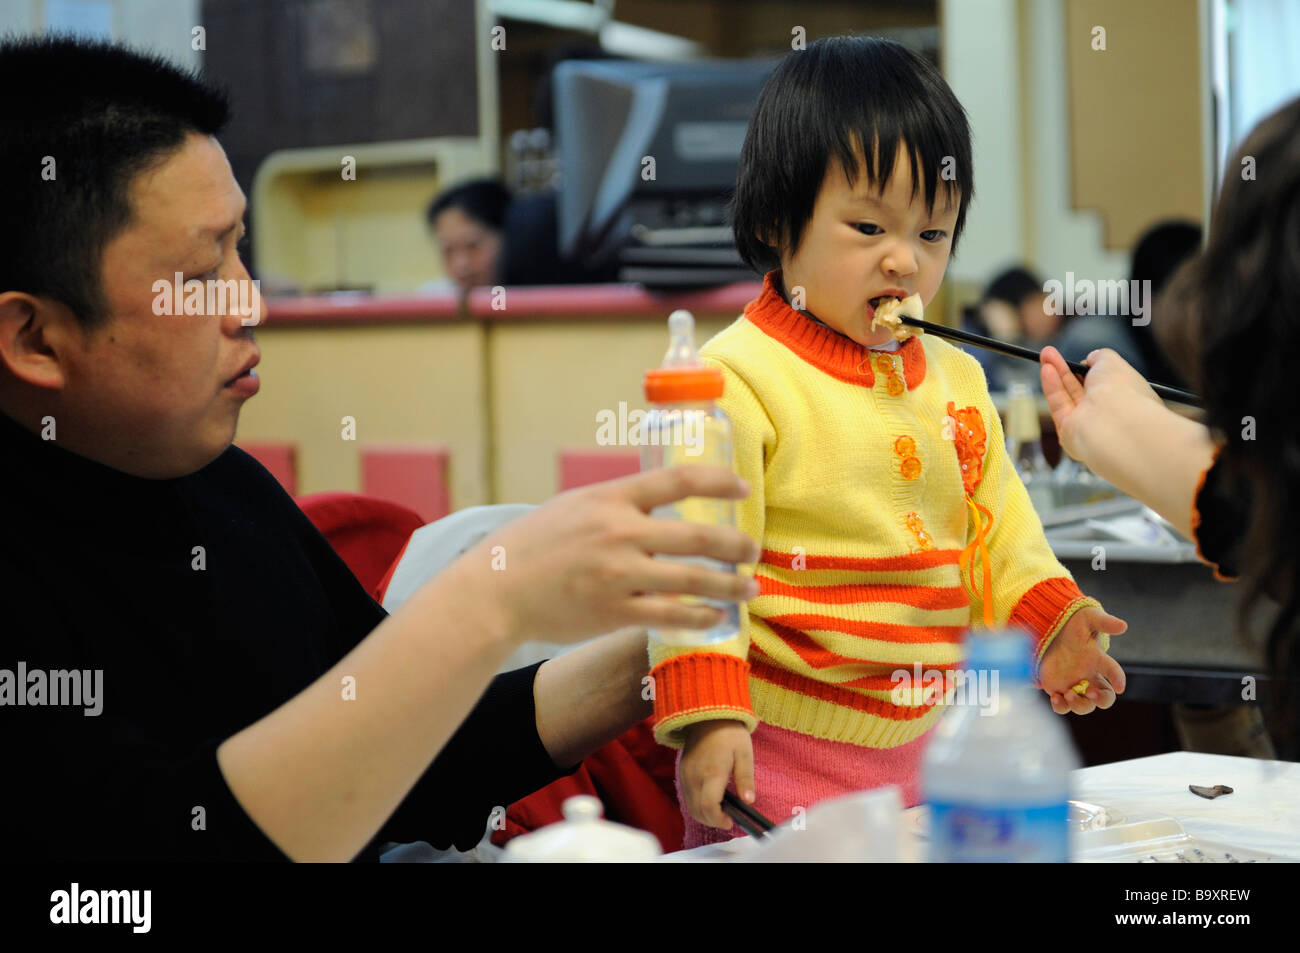 Chinese couple feeding a baby in a restaurant in Tianjin, China. 14-Mar-2009 - Stock Image